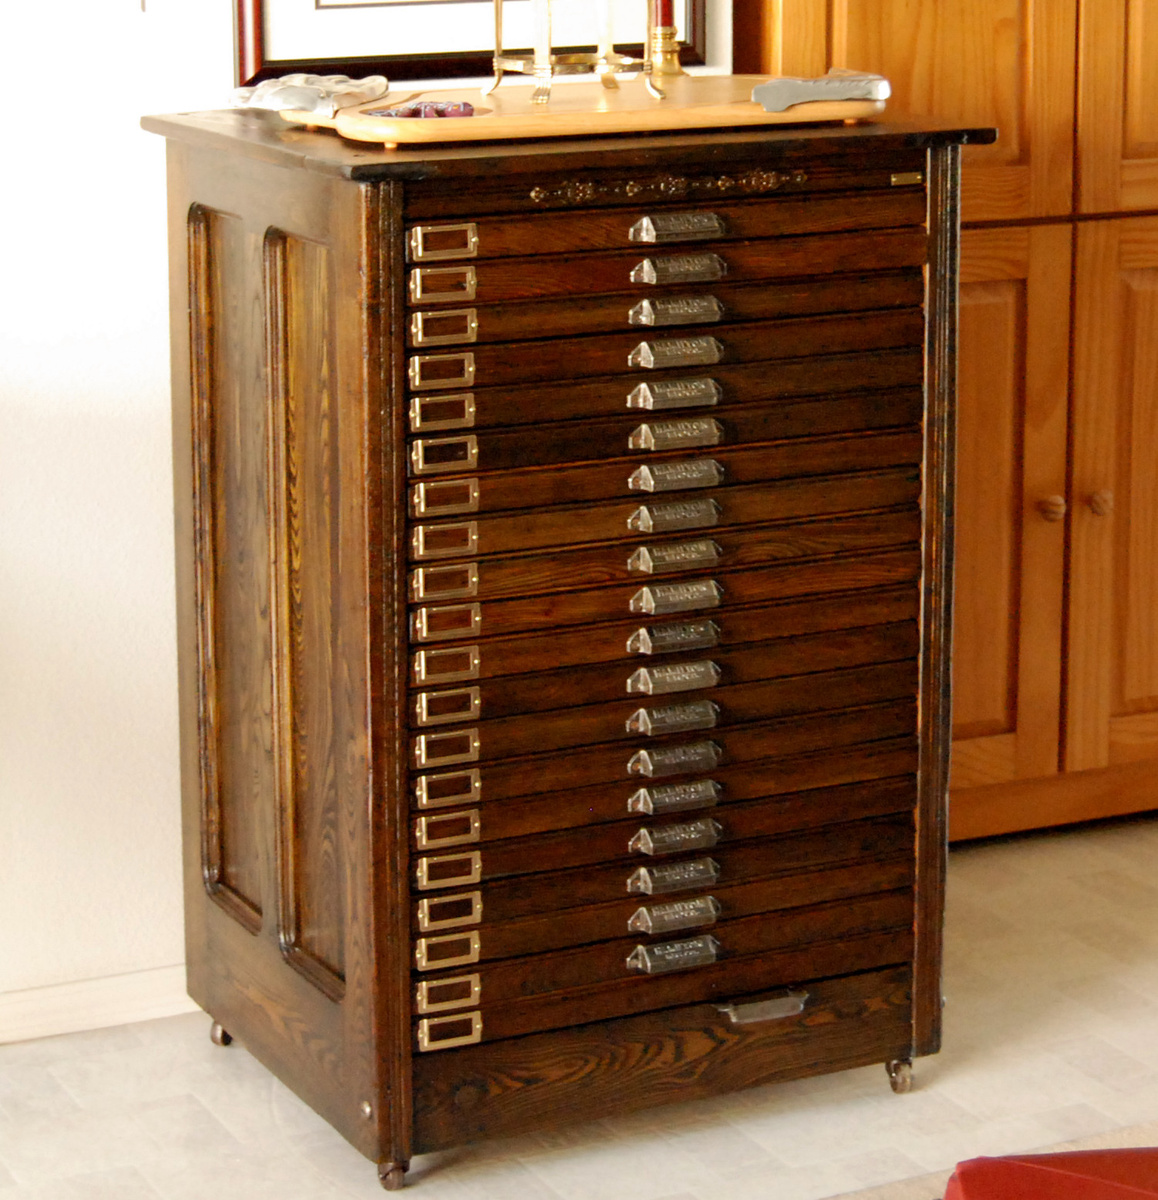 Vintage Printers Cabinet | MF Cabinets